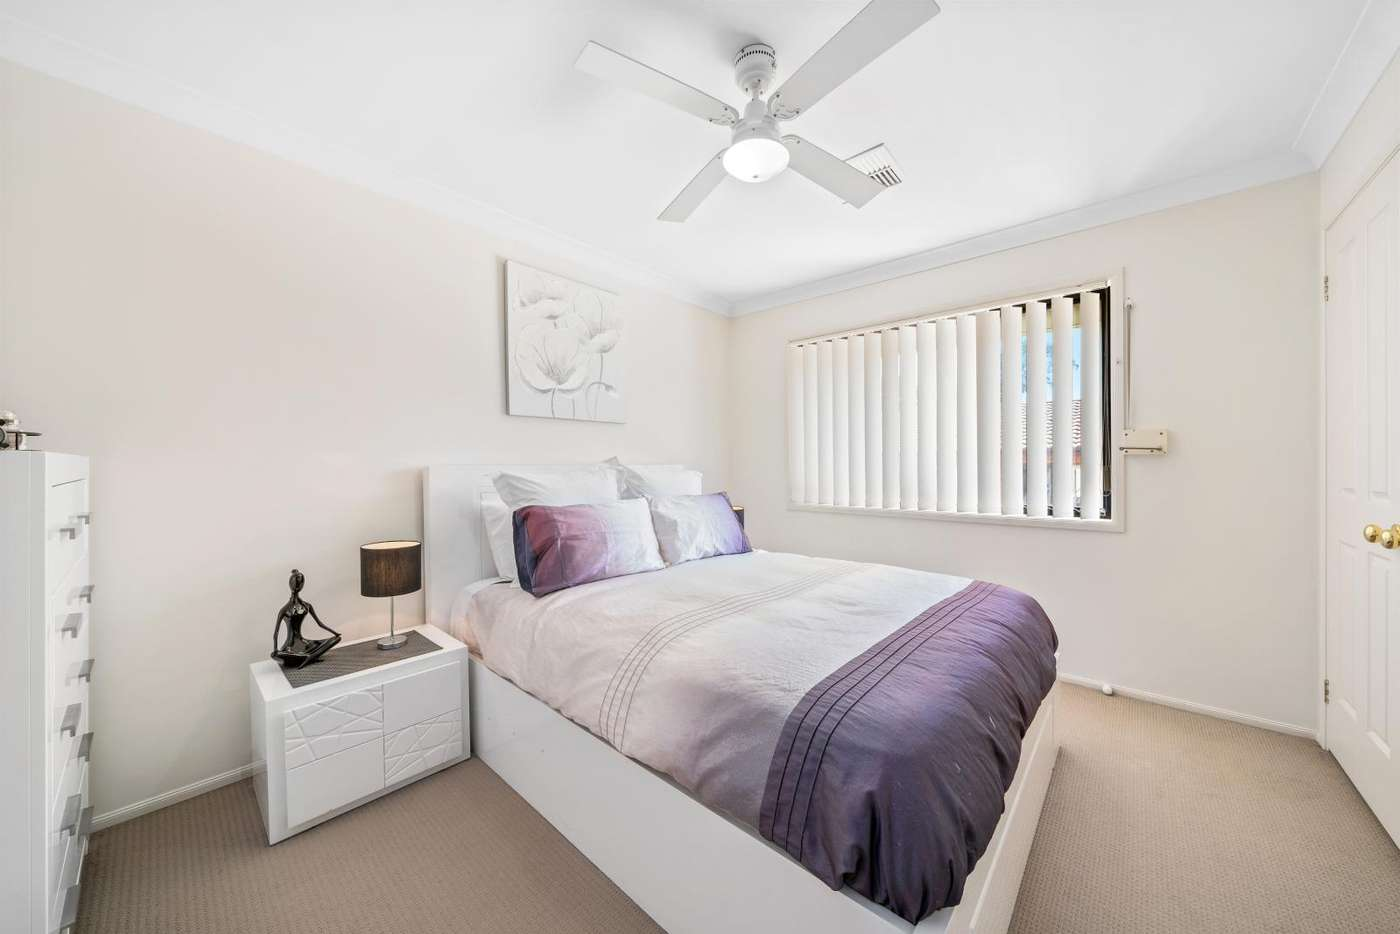 Fifth view of Homely townhouse listing, 14/46-52 Wattle Road, Casula NSW 2170